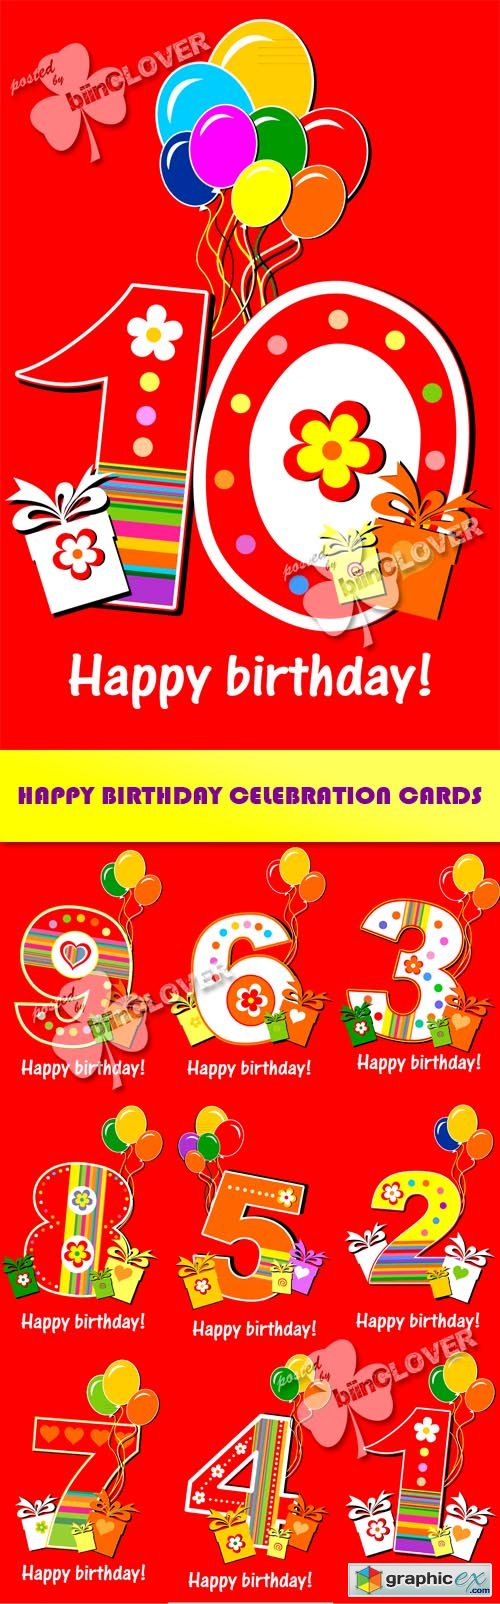 Vector Happy birthday celebration cards 0422